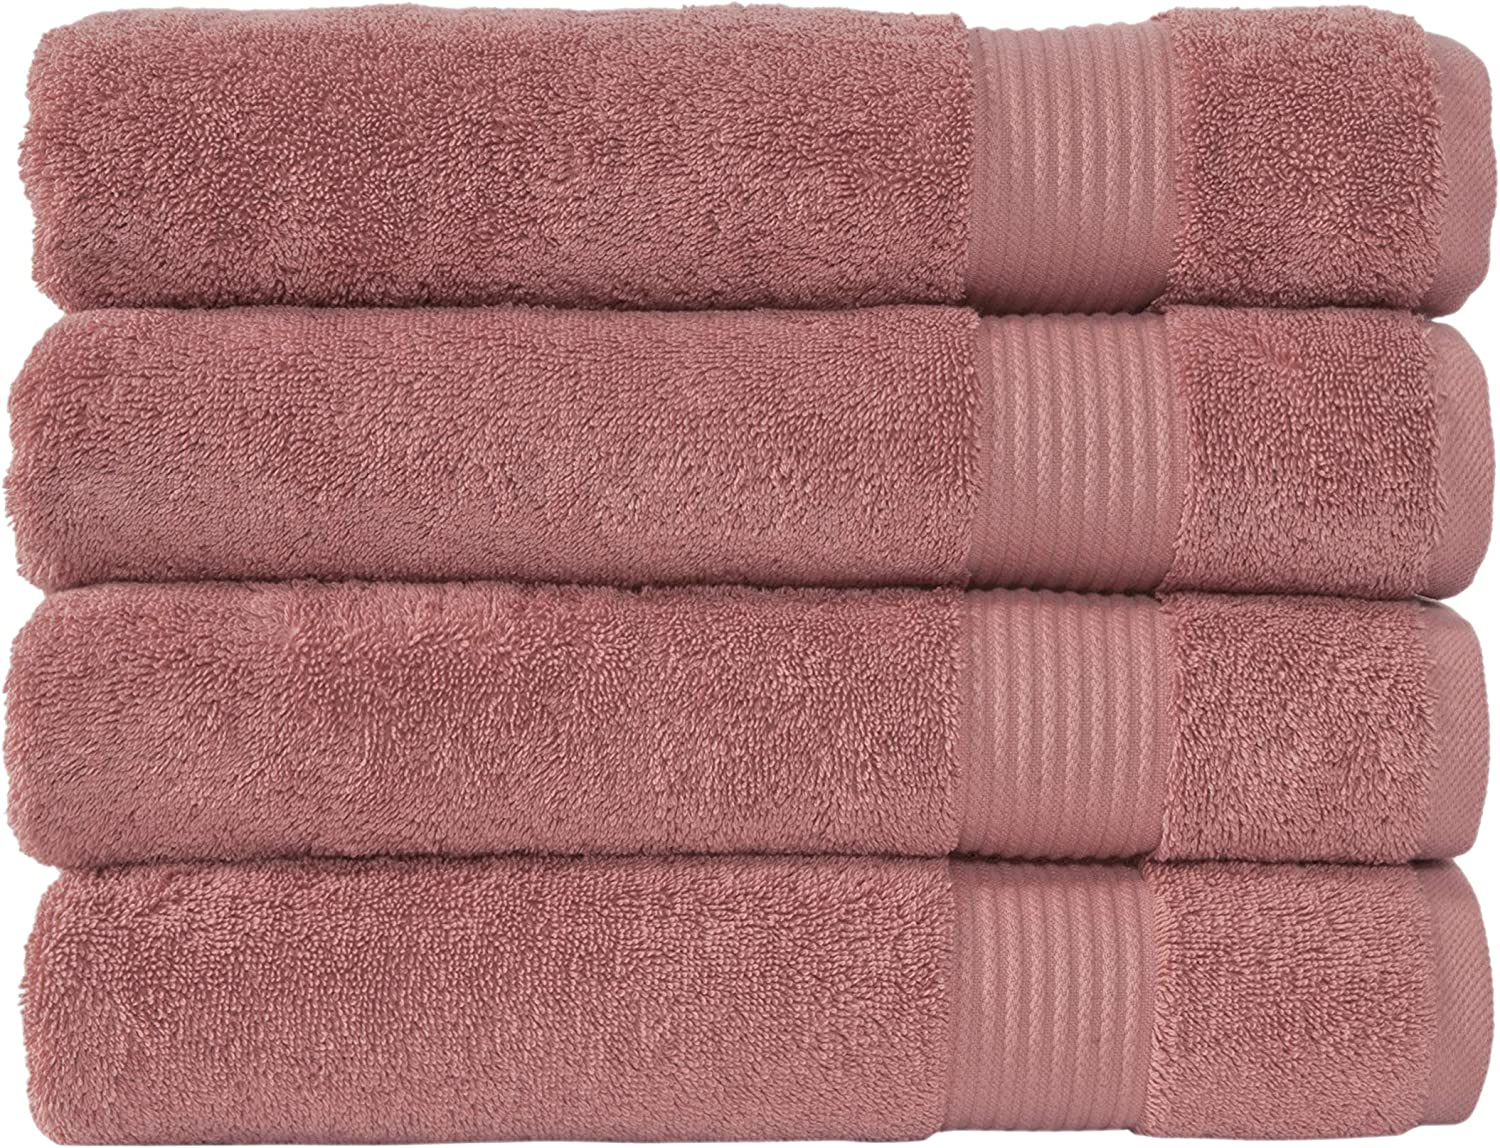 Classic Turkish Towels Luxury Bath Towels - Soft and Plush Hotel and Spa Quality 4 Piece Set Made with 100% Turkish Cotton (Canyon Clay)